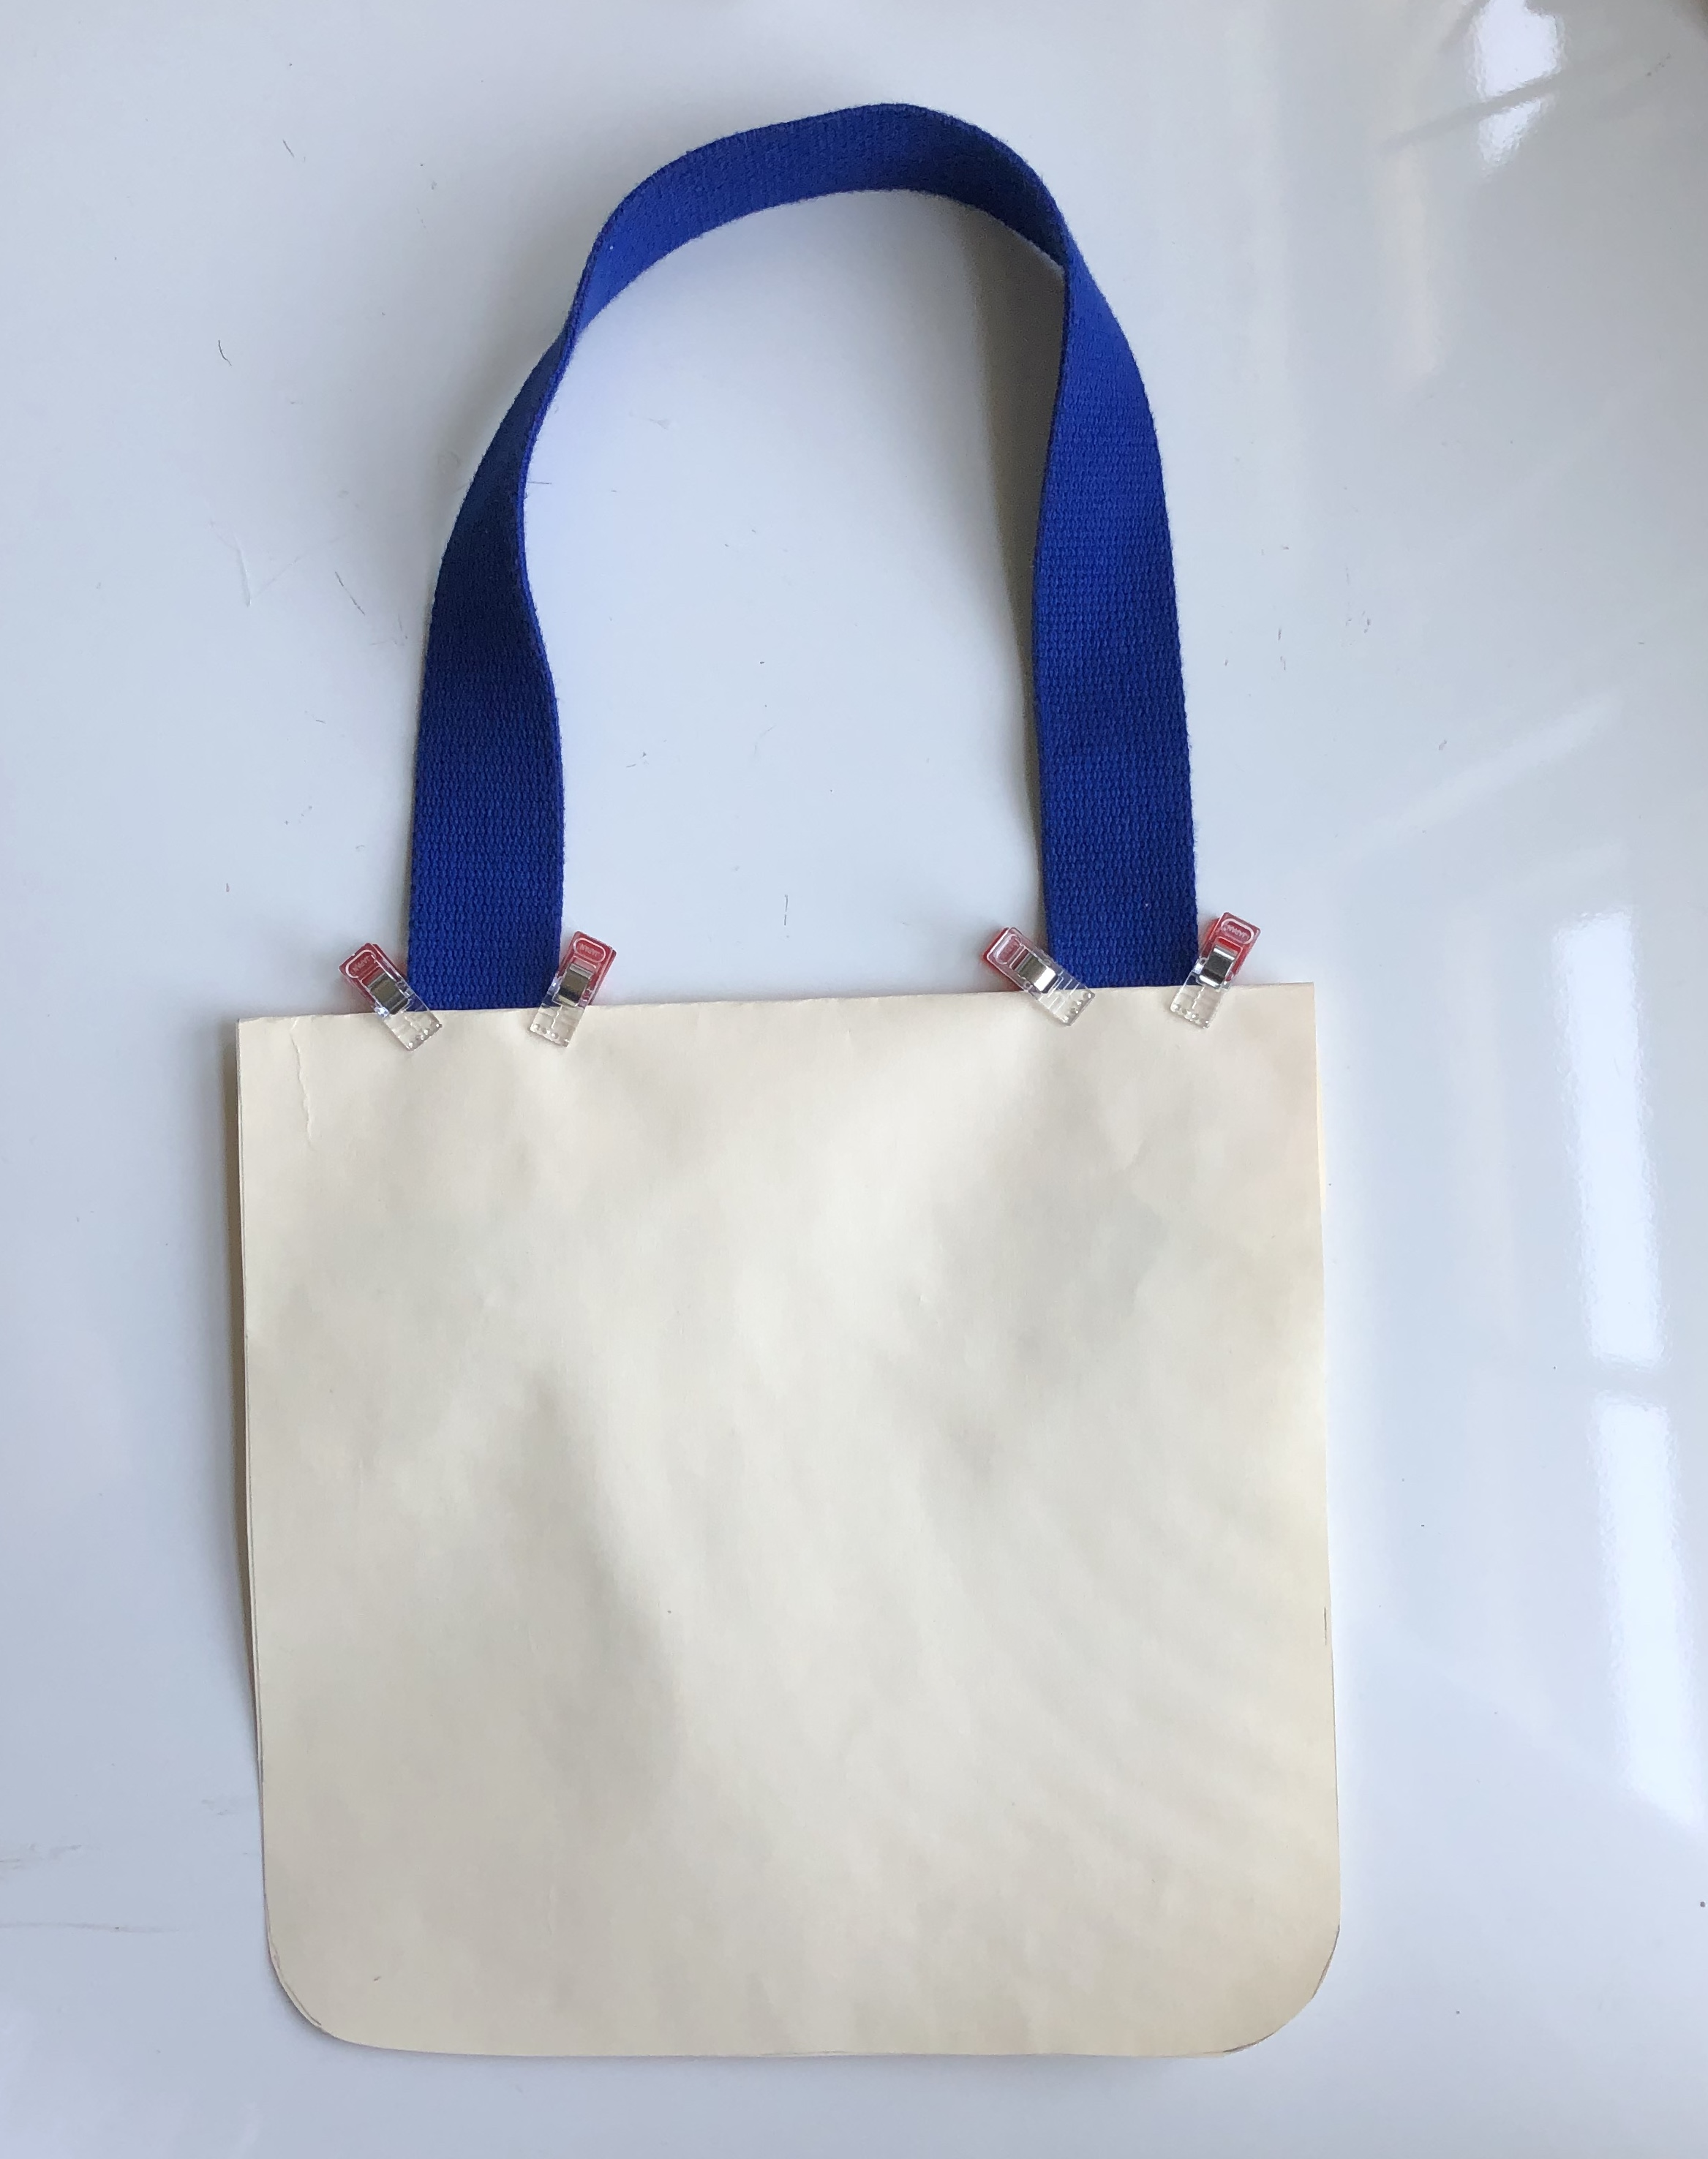 A tote mock-up made of oaktag. Handles are clipped to the top to test for fit.